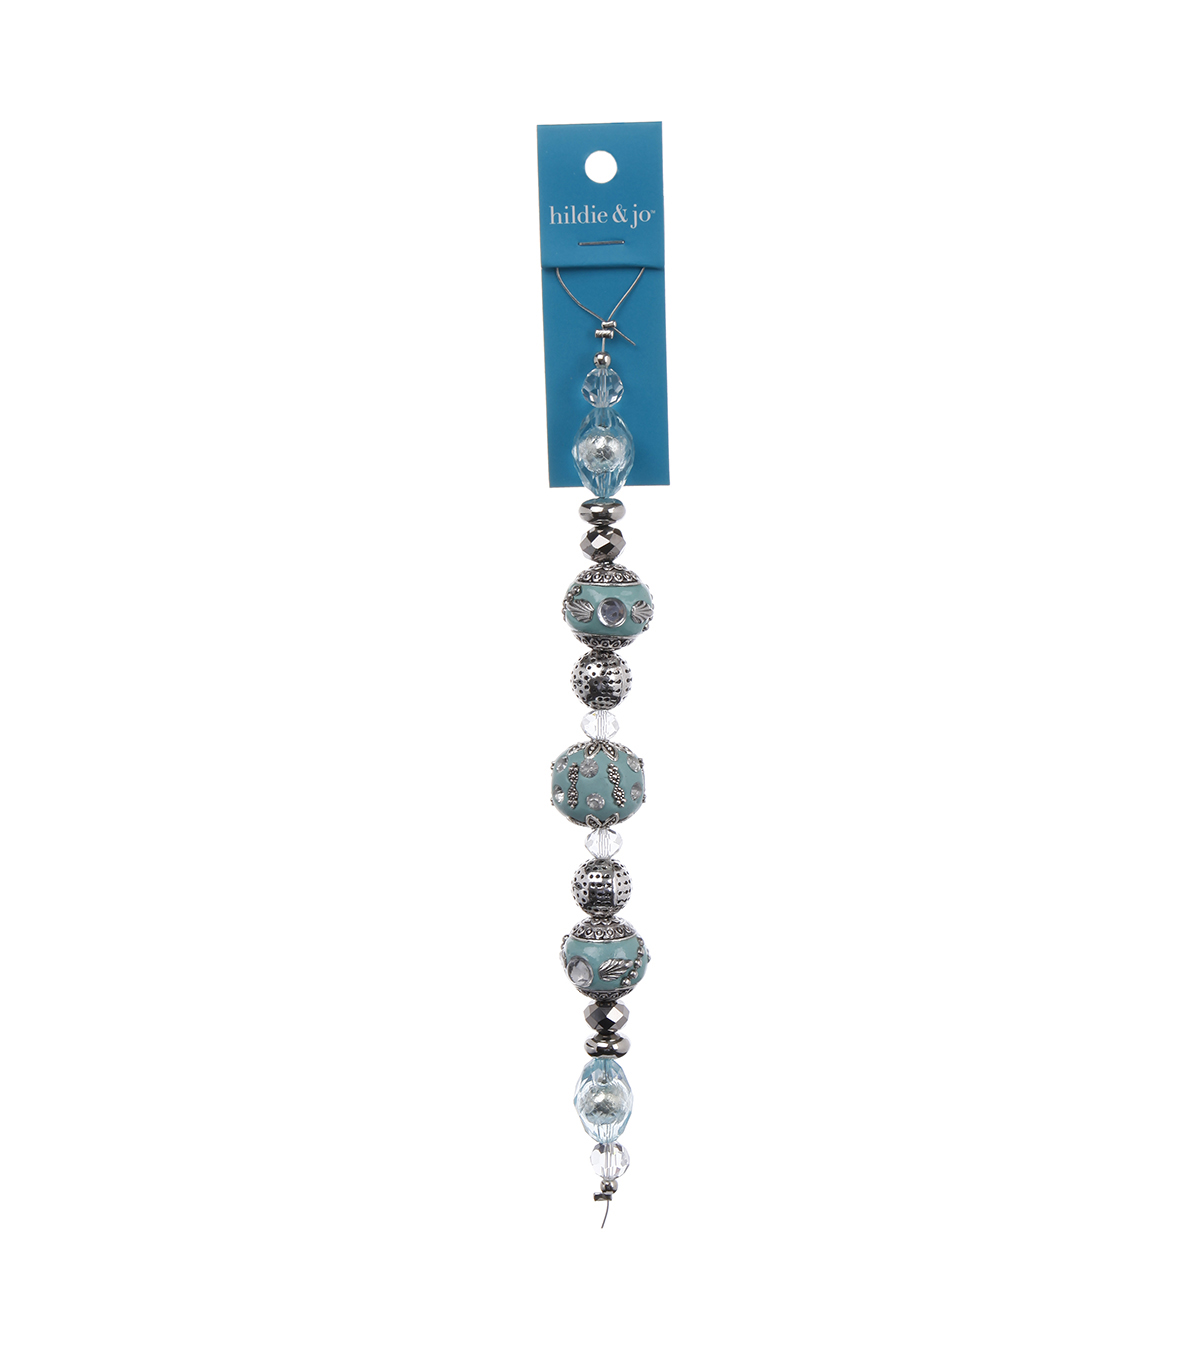 hildie & jo™ 7'' Strung Beads-Light Blue & Silver